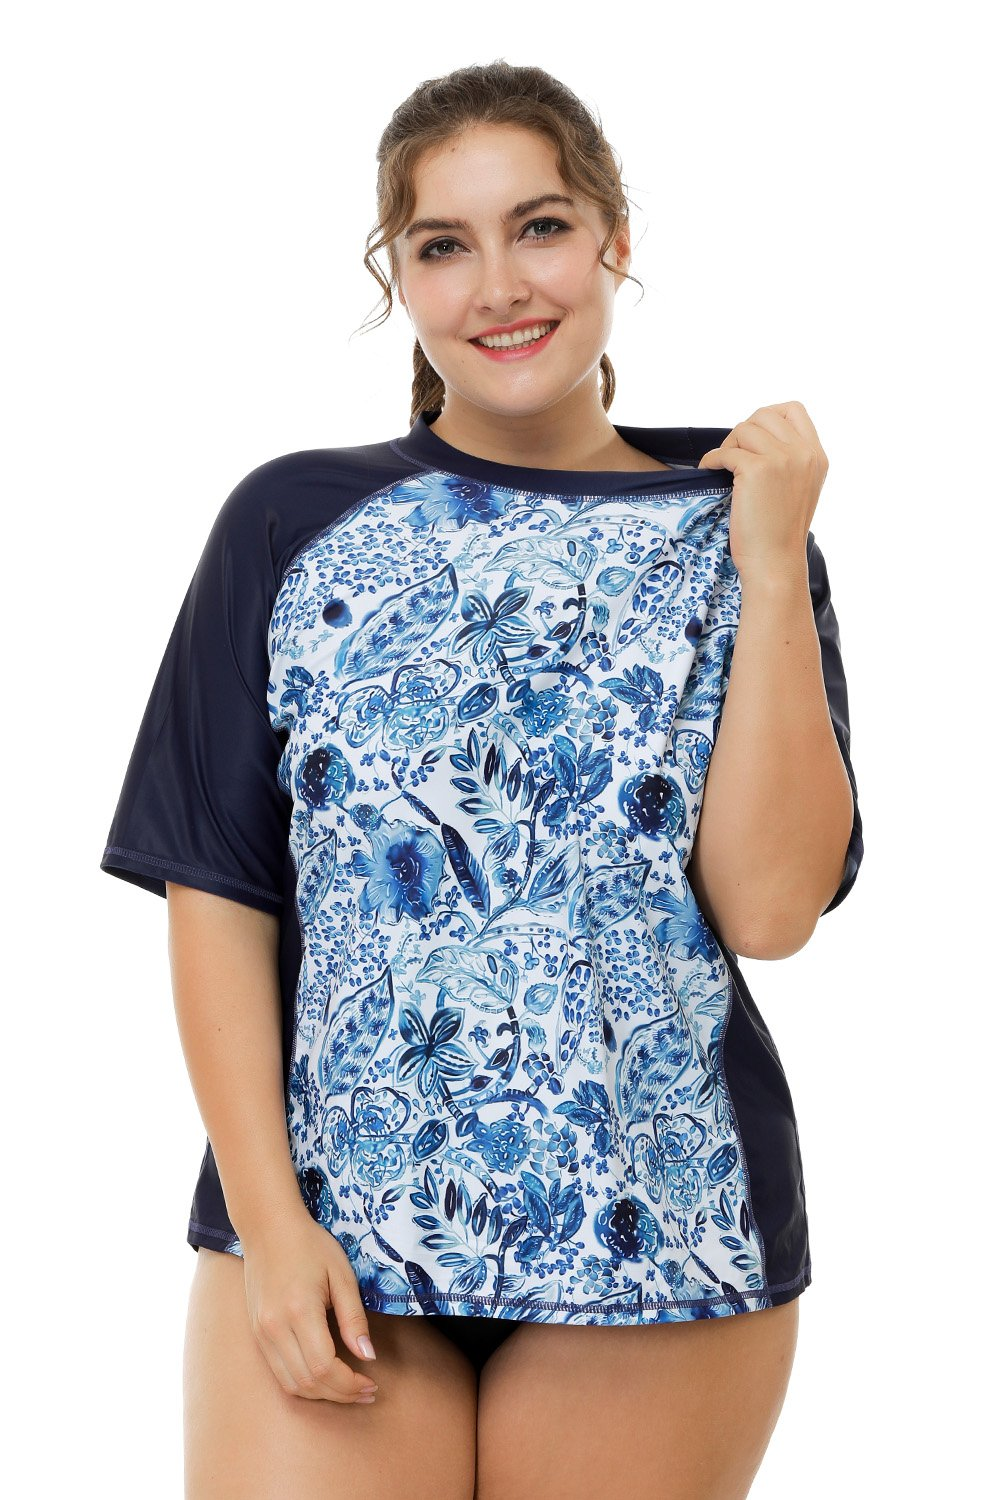 vivicoco Womens Plus Size Rash Guards Short Sleeve Swim Shirts Swimwear 1X